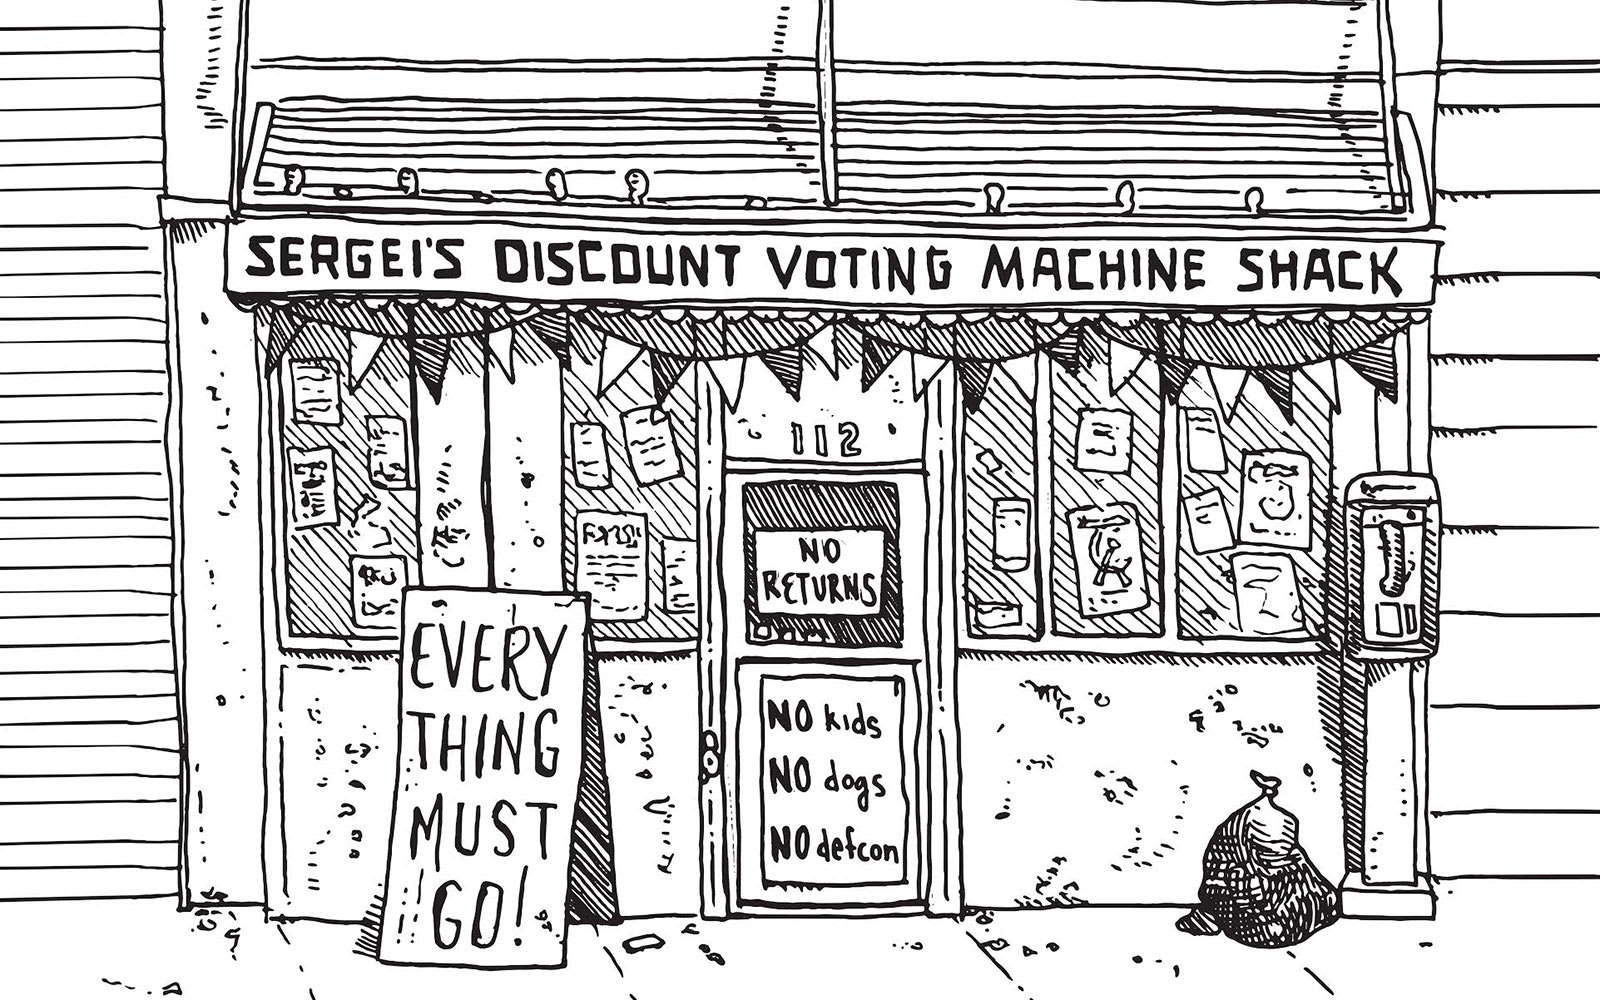 Voting-machine makers are already worried about Defcon